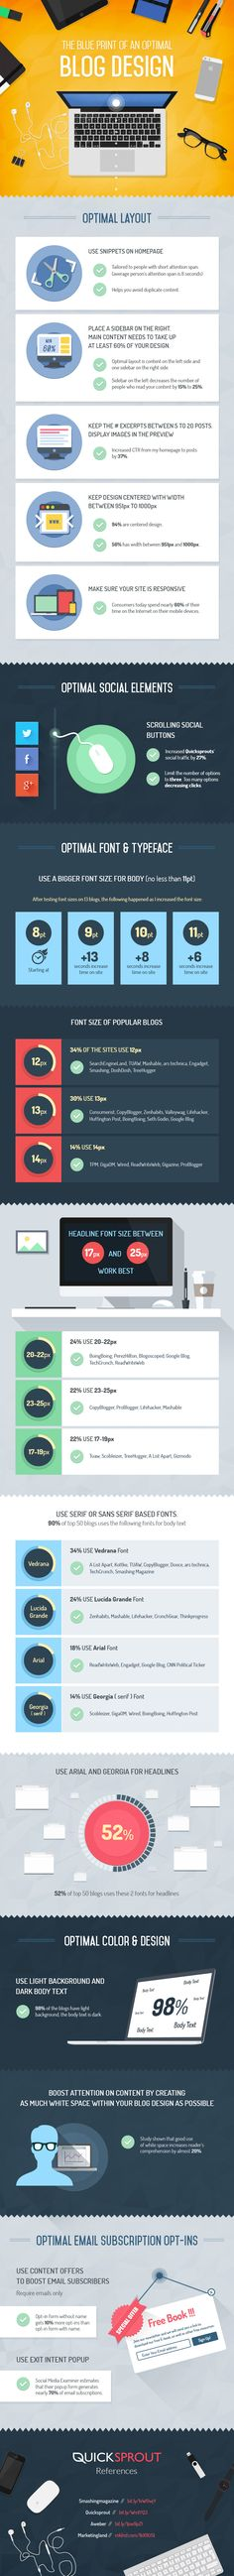 The Blue Print of an Optimal Blog Design #infographic